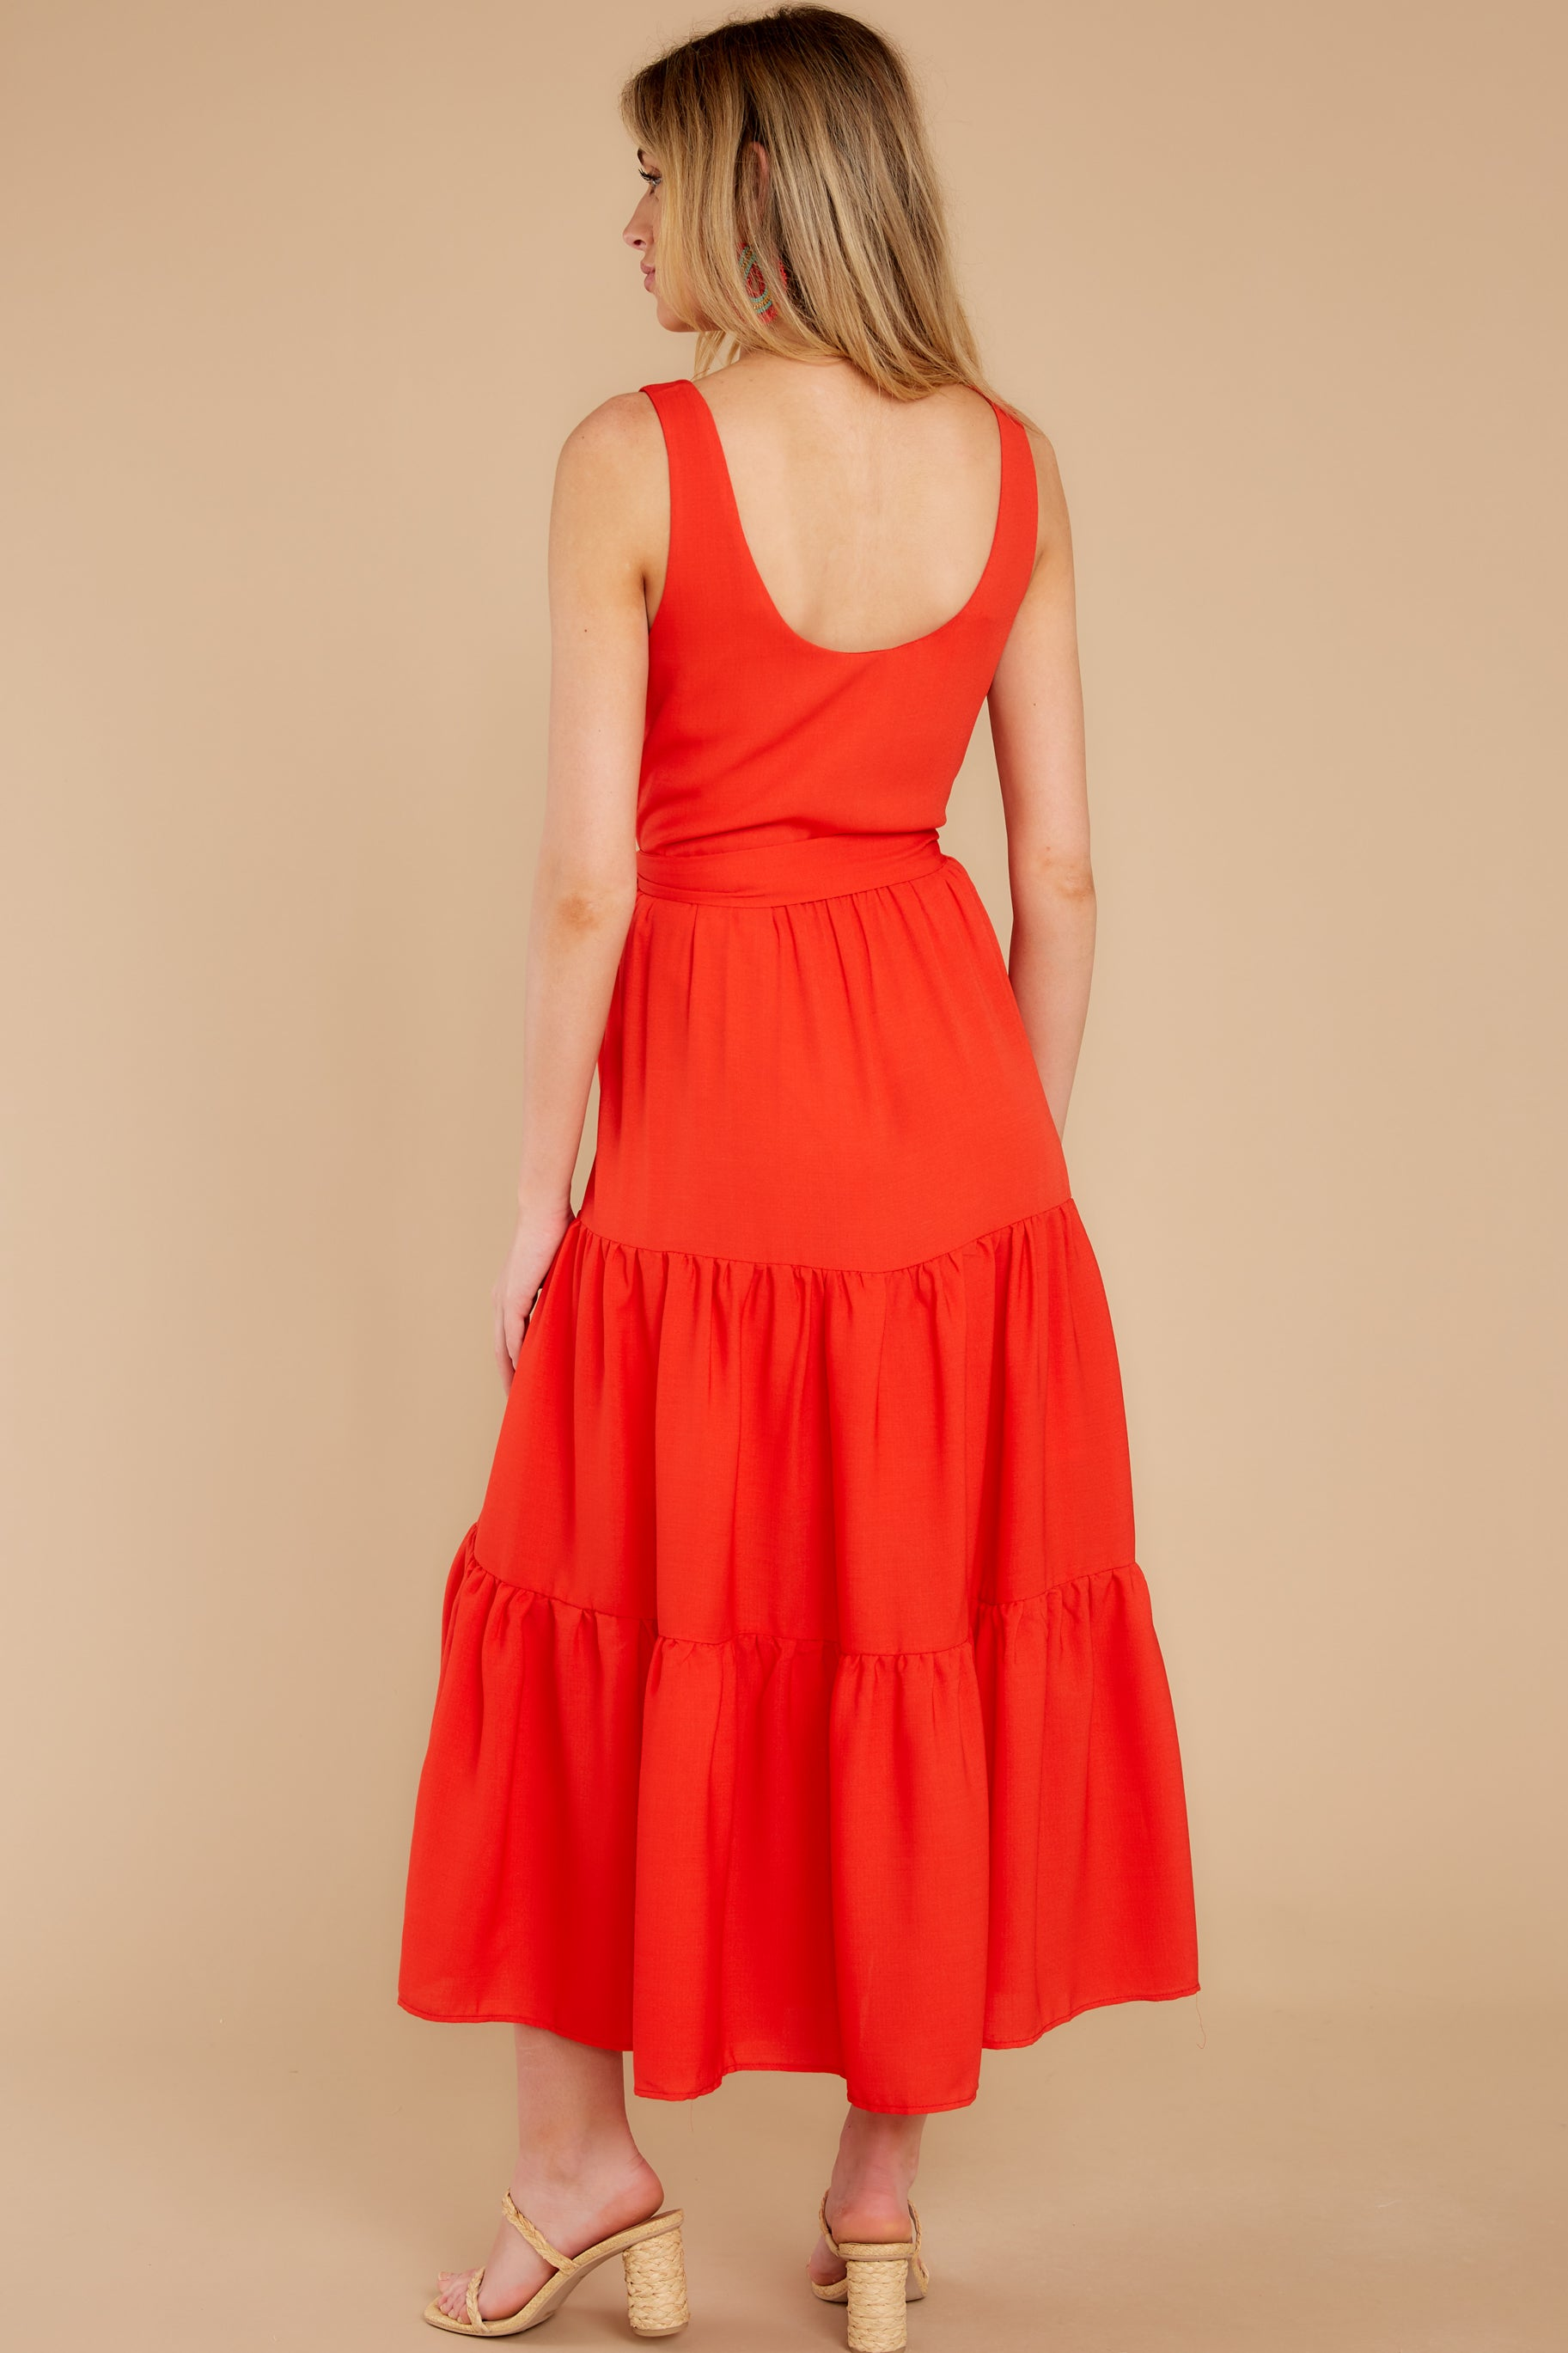 7 Leap Of Faith Red Maxi Dress at reddress.com